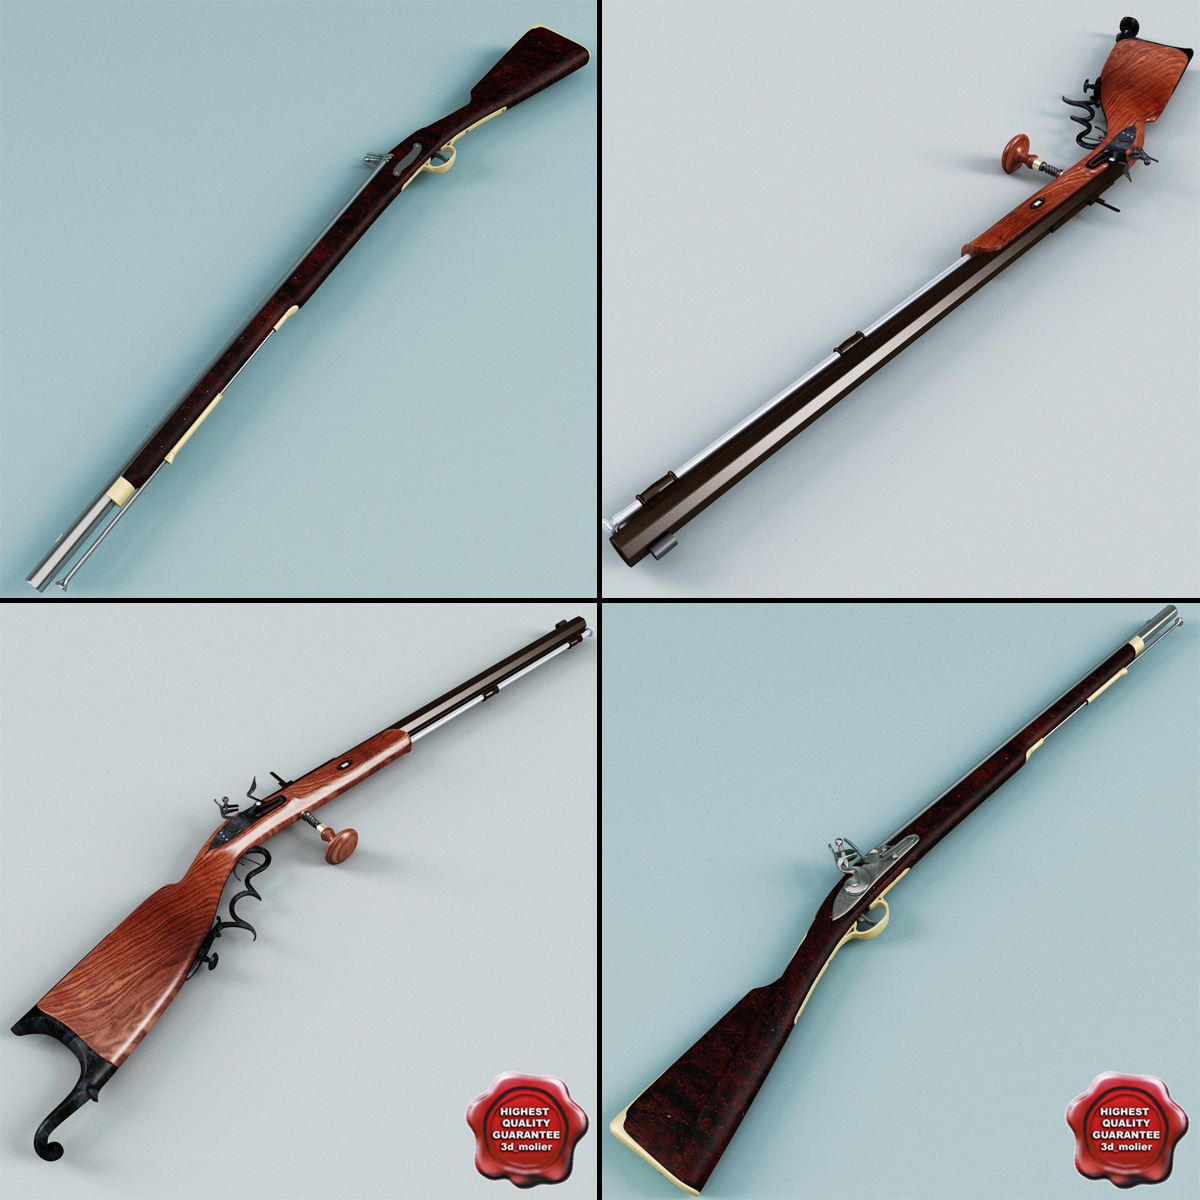 Old_Muskets_Collection_V2_00.jpg